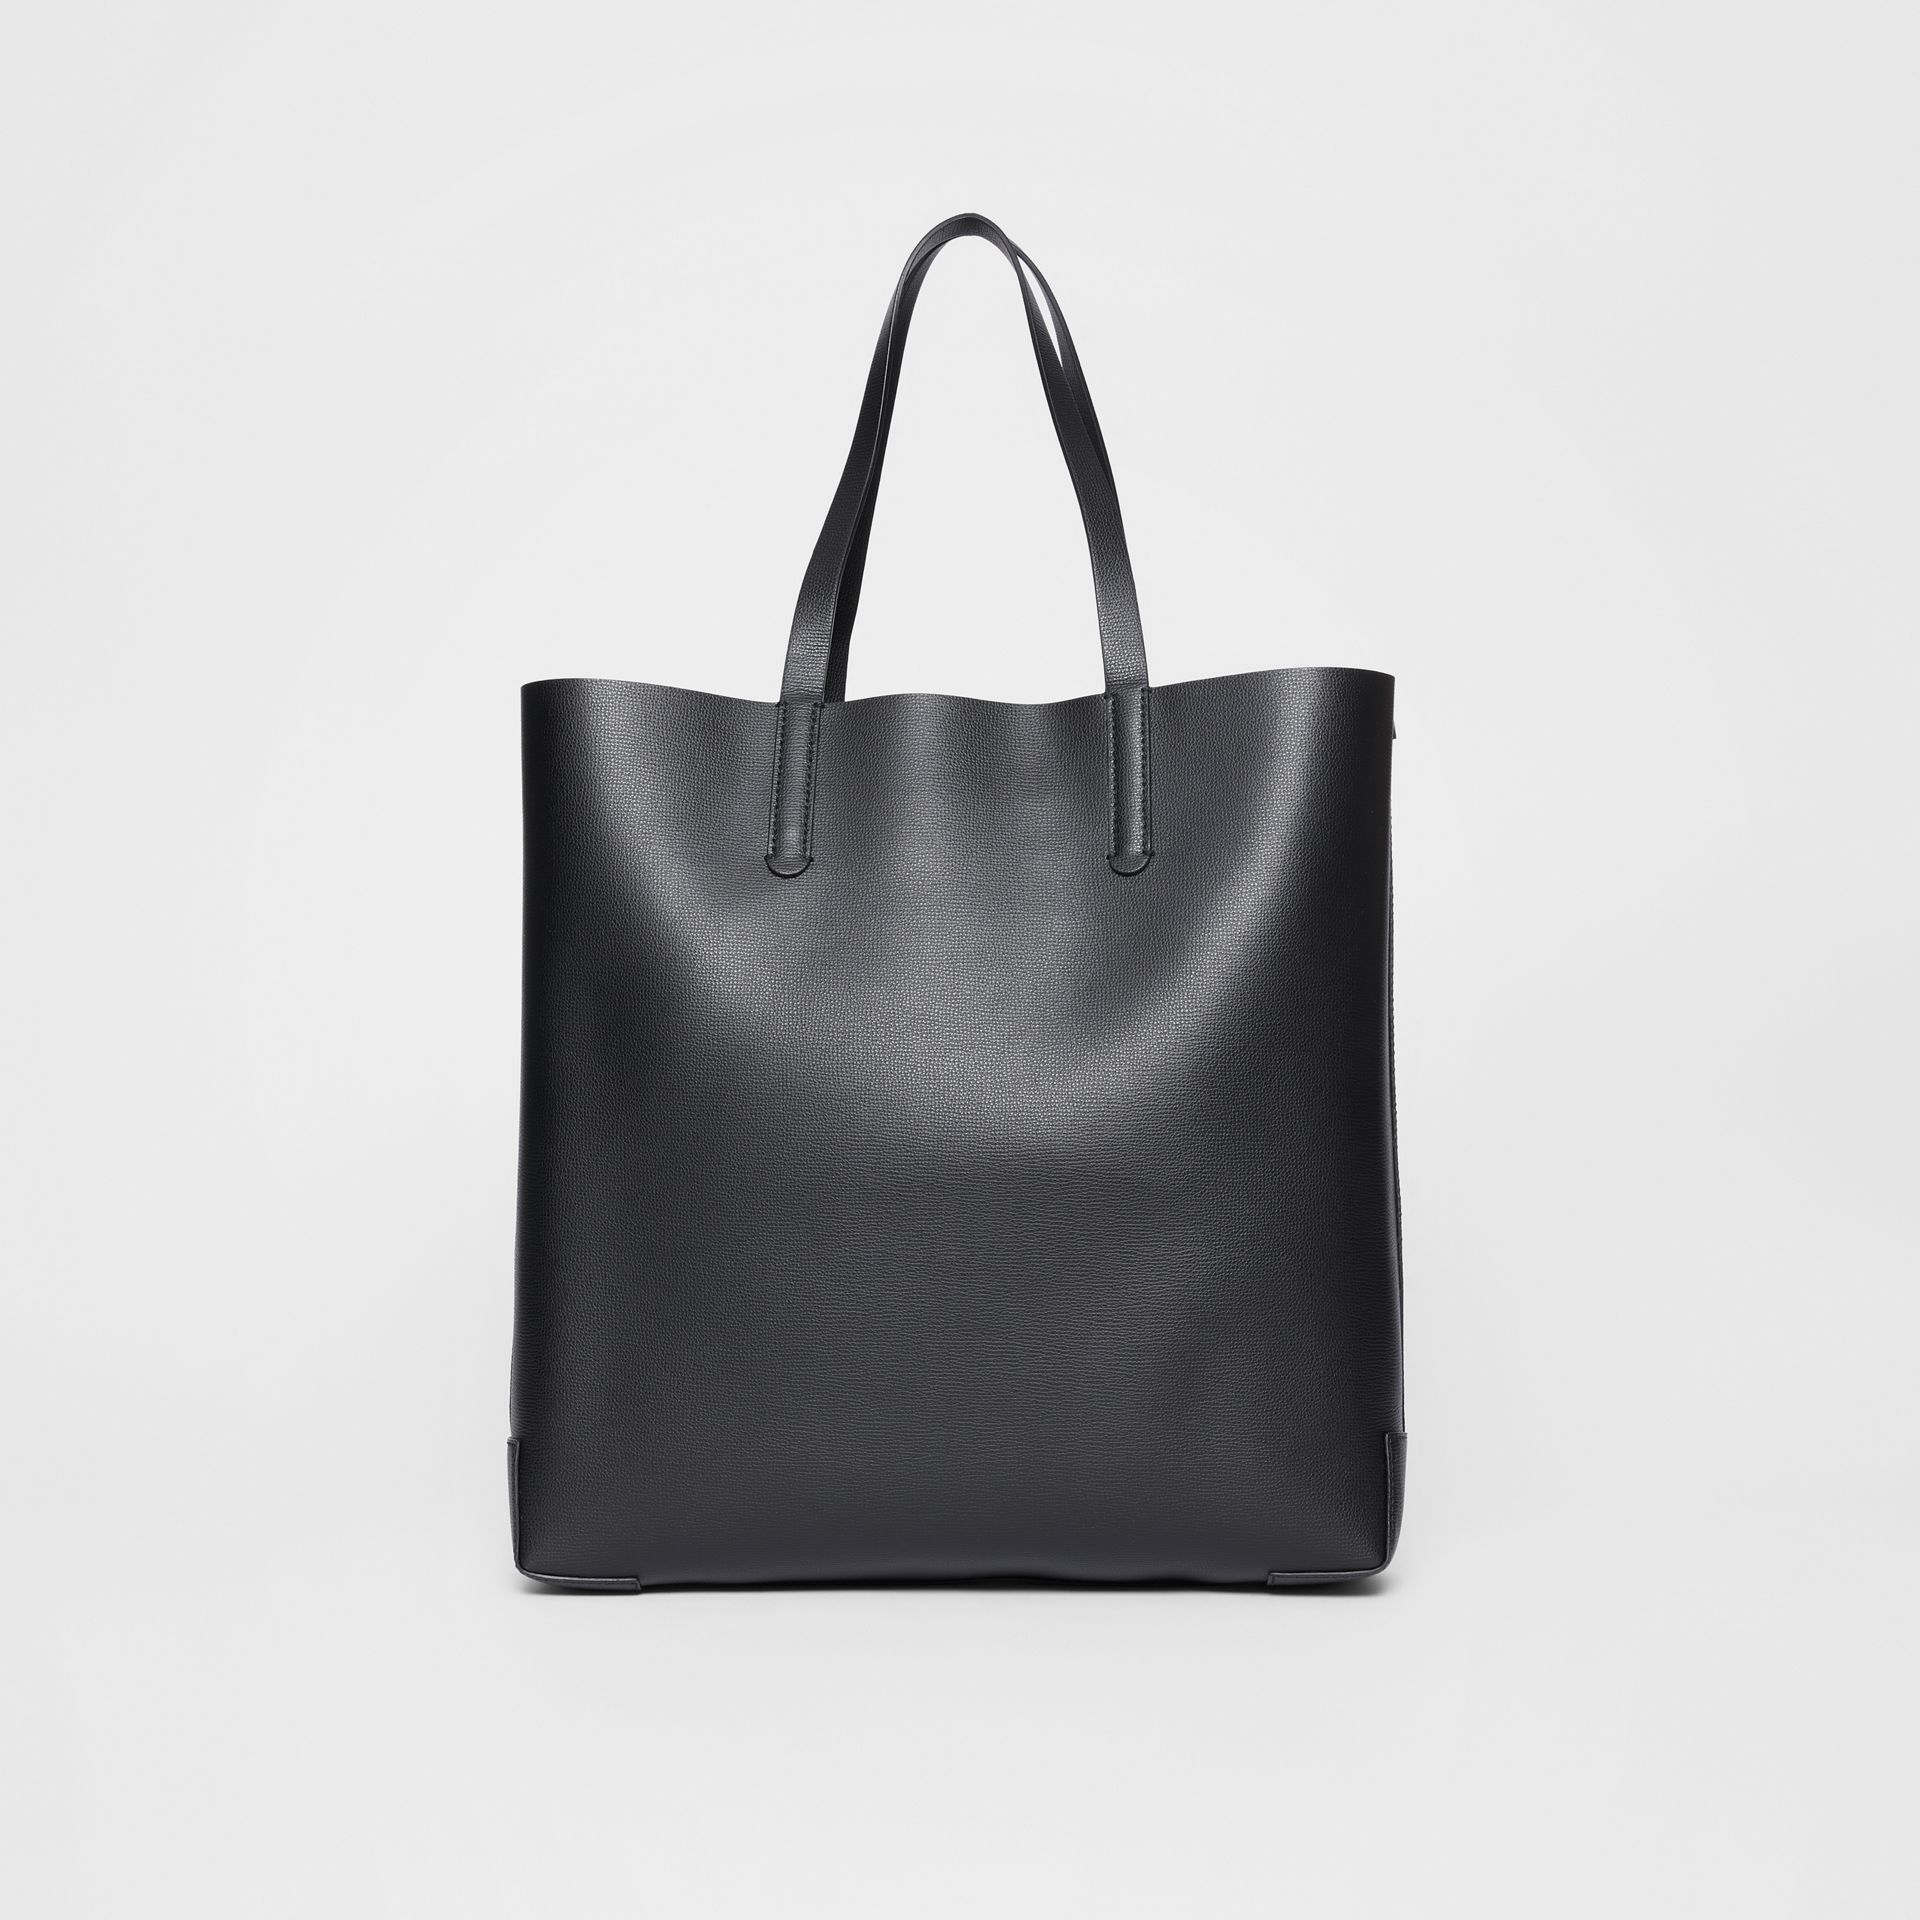 Grand sac tote en cuir embossé Monogram (Noir) | Burberry Canada - photo de la galerie 5